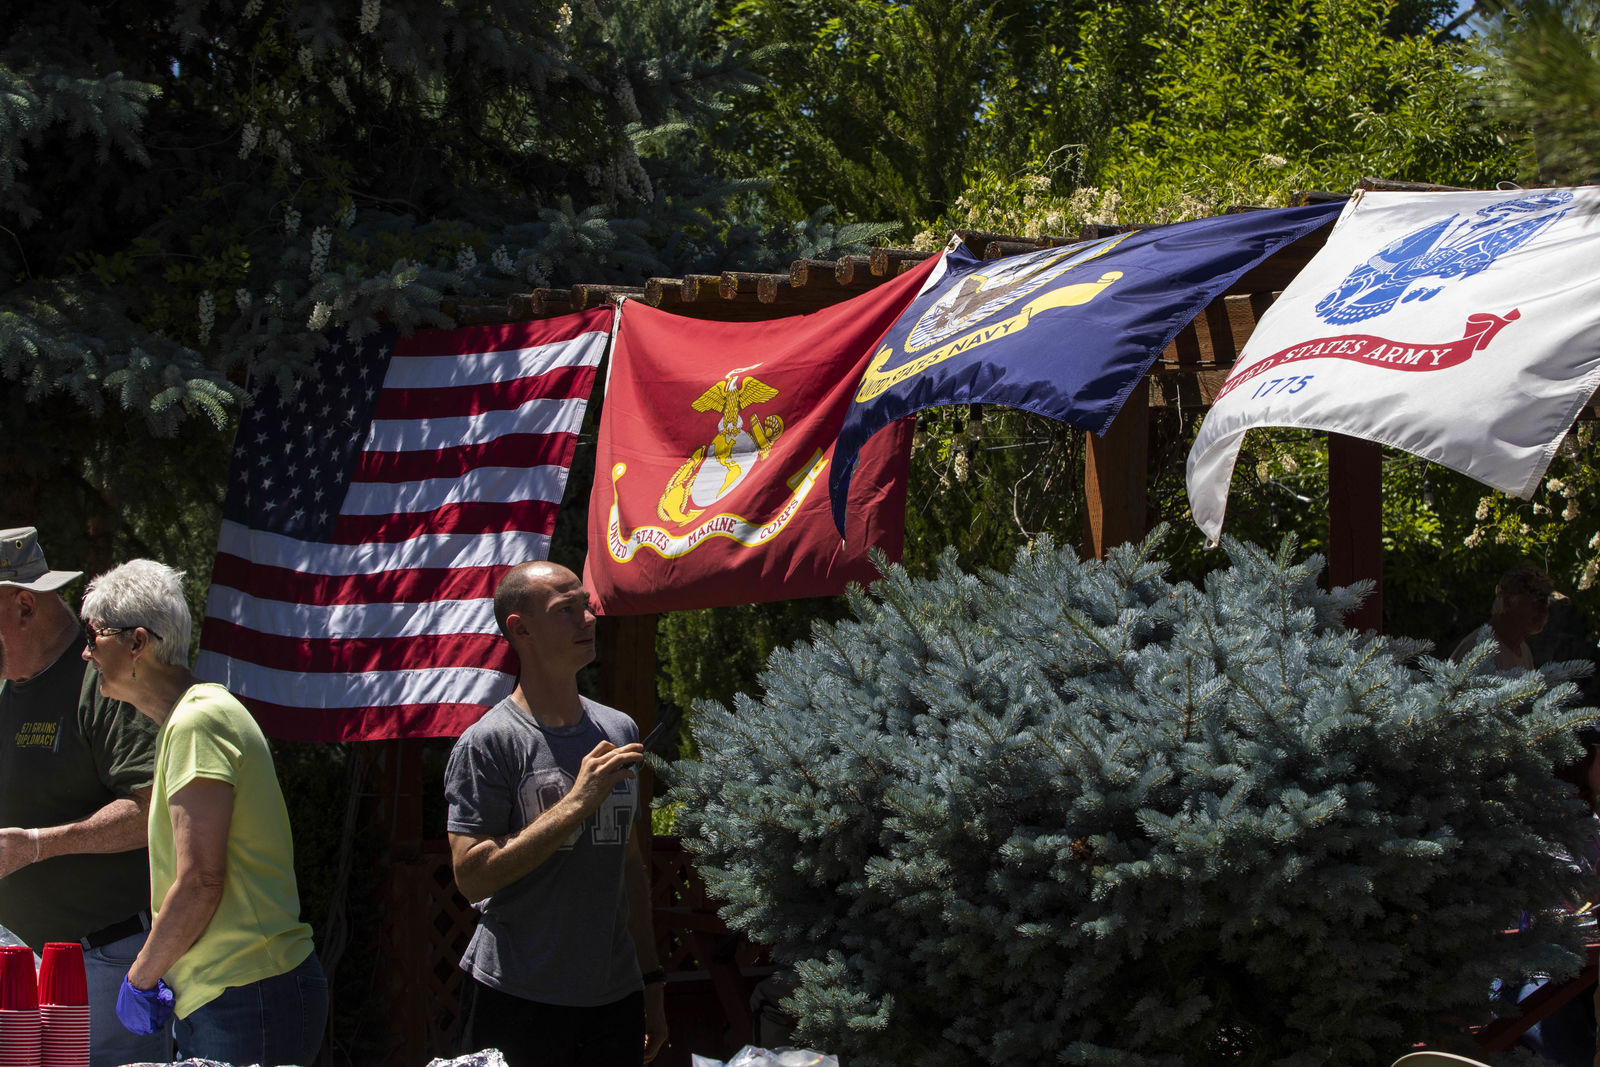 Veterans from around the Treasure Valley gathered at the Juniper Ranch in Caldwell for a day of fishing, chili, and fun. The owners of the ranch, Stan and Jeanie Meholchick, host the chili feed twice a year to give thanks to veterans. (Photos by Axel Quartarone){ }